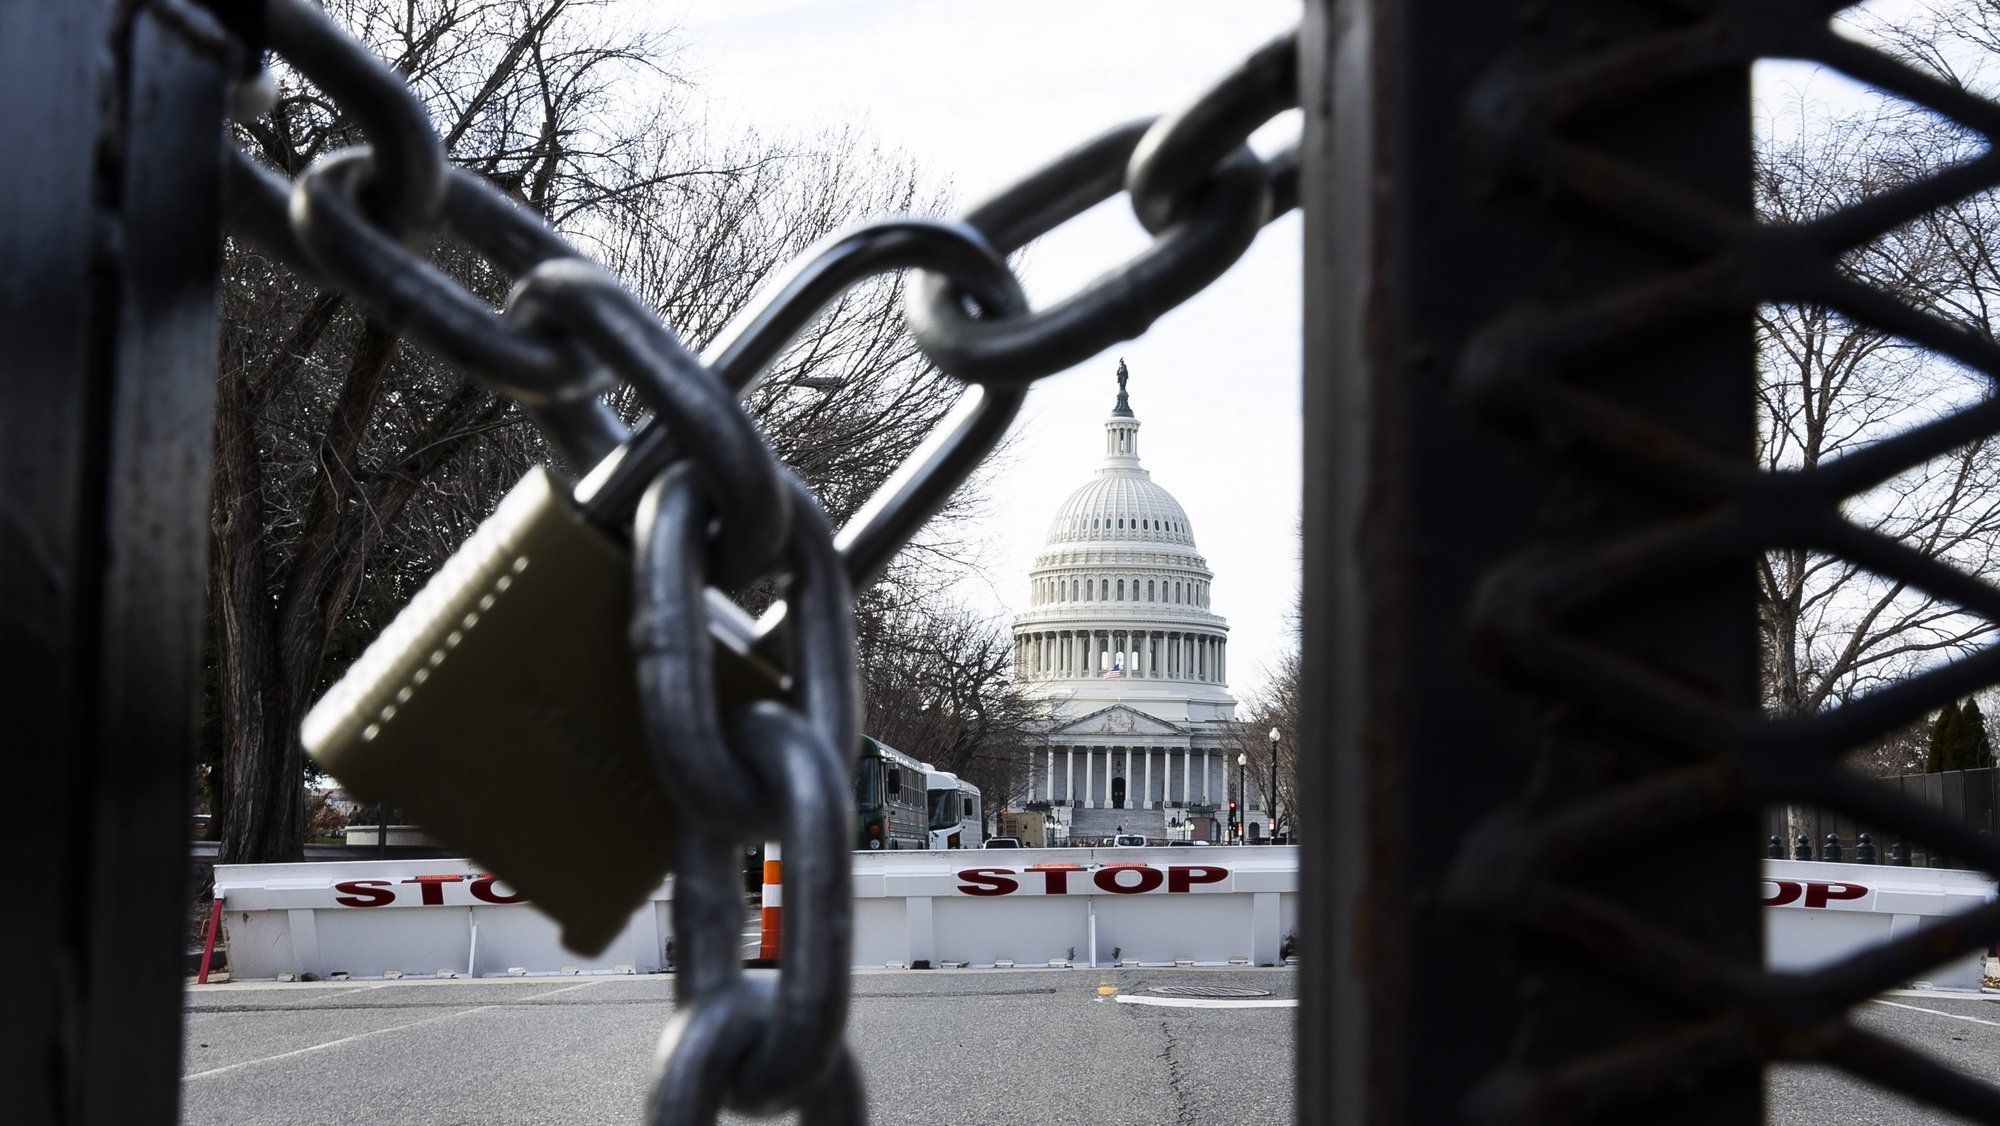 epa08942609 A lock on a security fence around the US Capitol building in Washington, DC, USA, 16 January 2021. At least twenty thousand troops of the National Guard and other security measures are being deployed in Washington to help secure the Capitol area in response to potentially violent unrest around the inauguration of US President-elect Joe Biden.  EPA/JUSTIN LANE